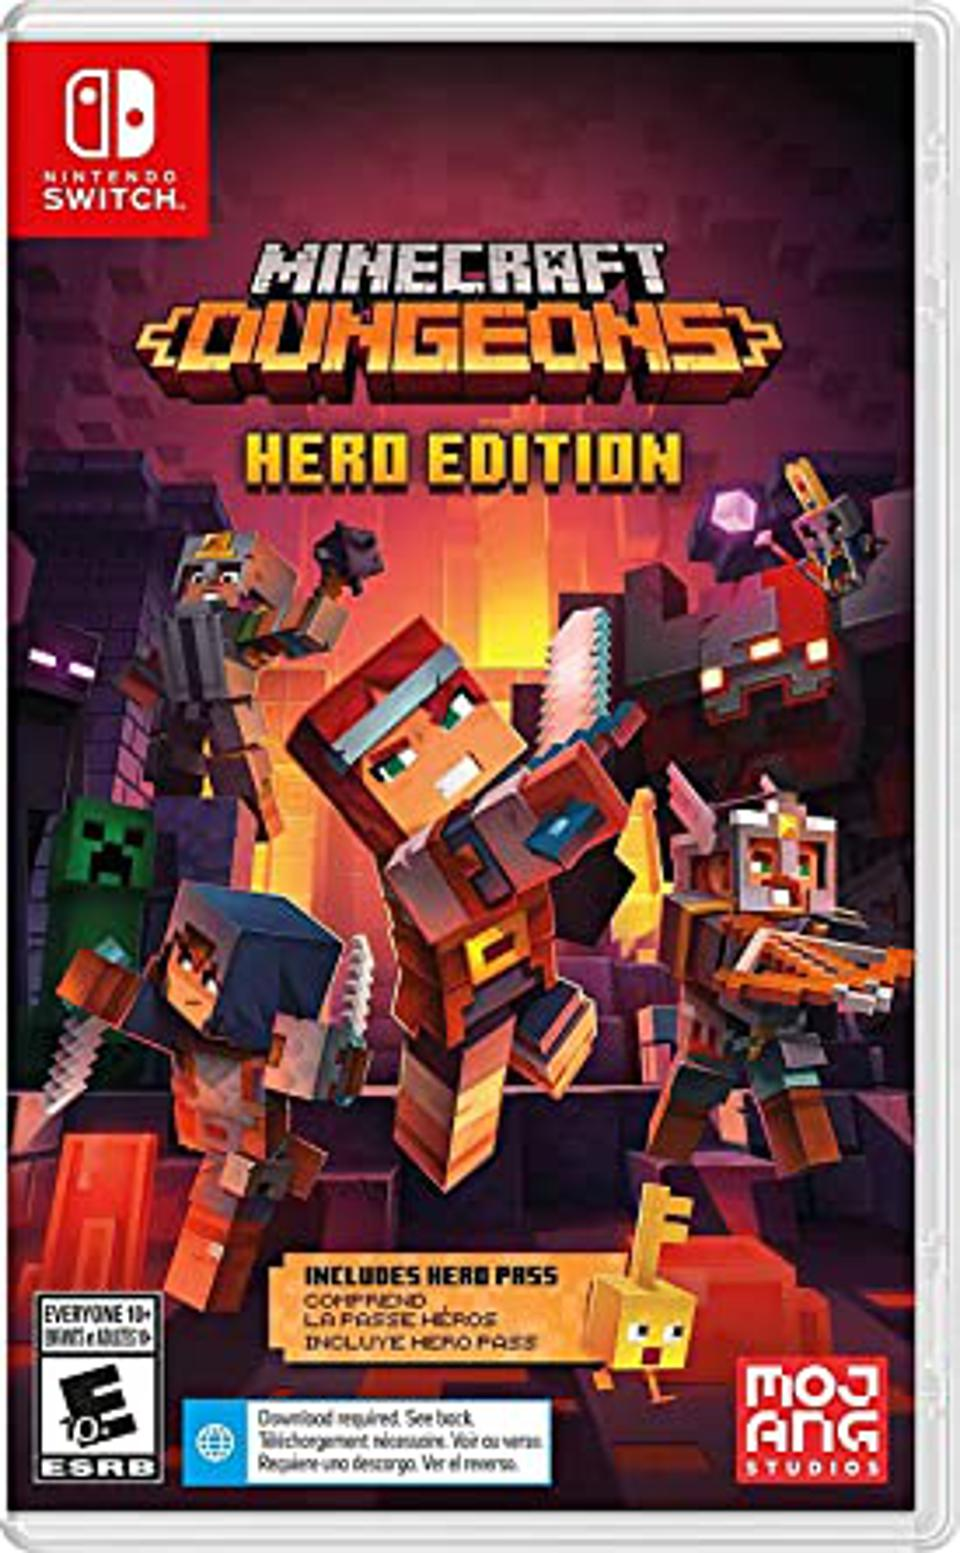 Minecraft Dungeons Hero Edition for Nintendo Switch retail box art